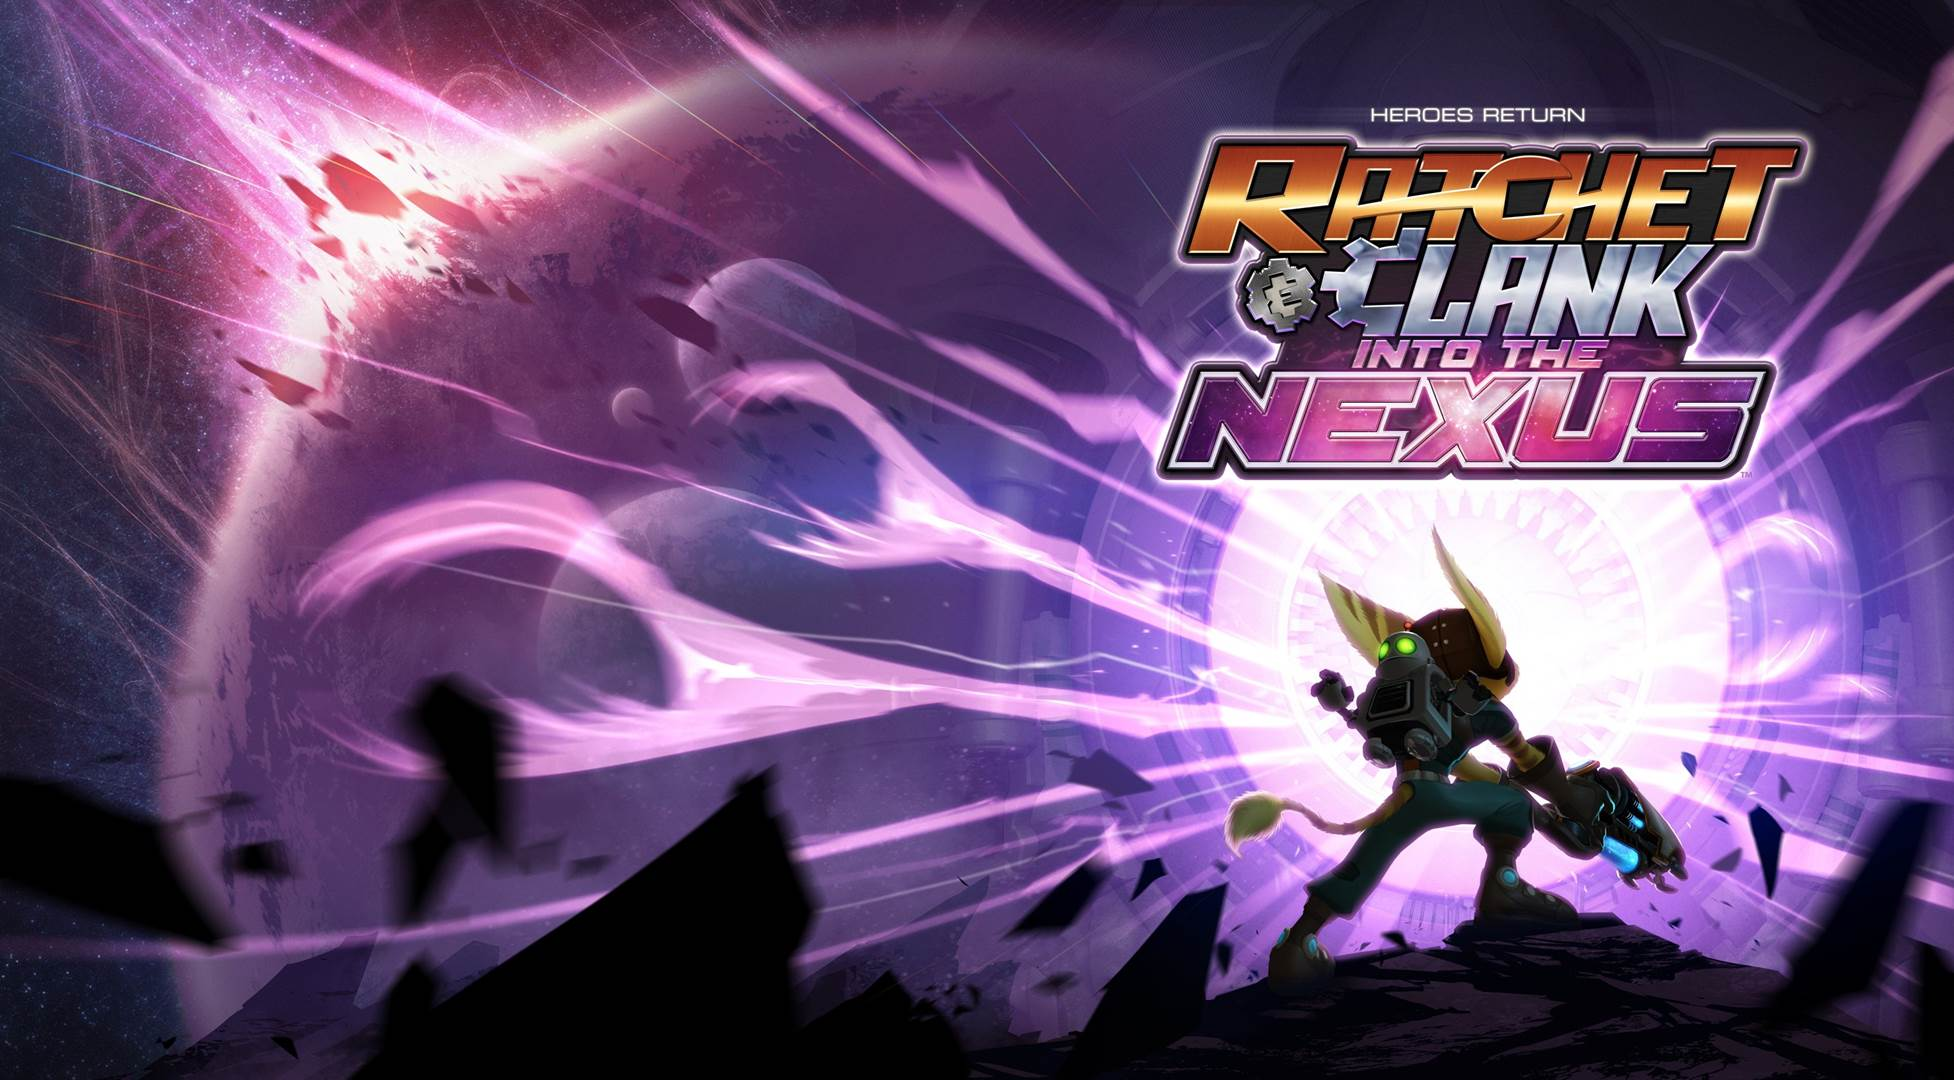 Ratchet and Clank – Into the Nexus Review: Big Fun, Short-lived